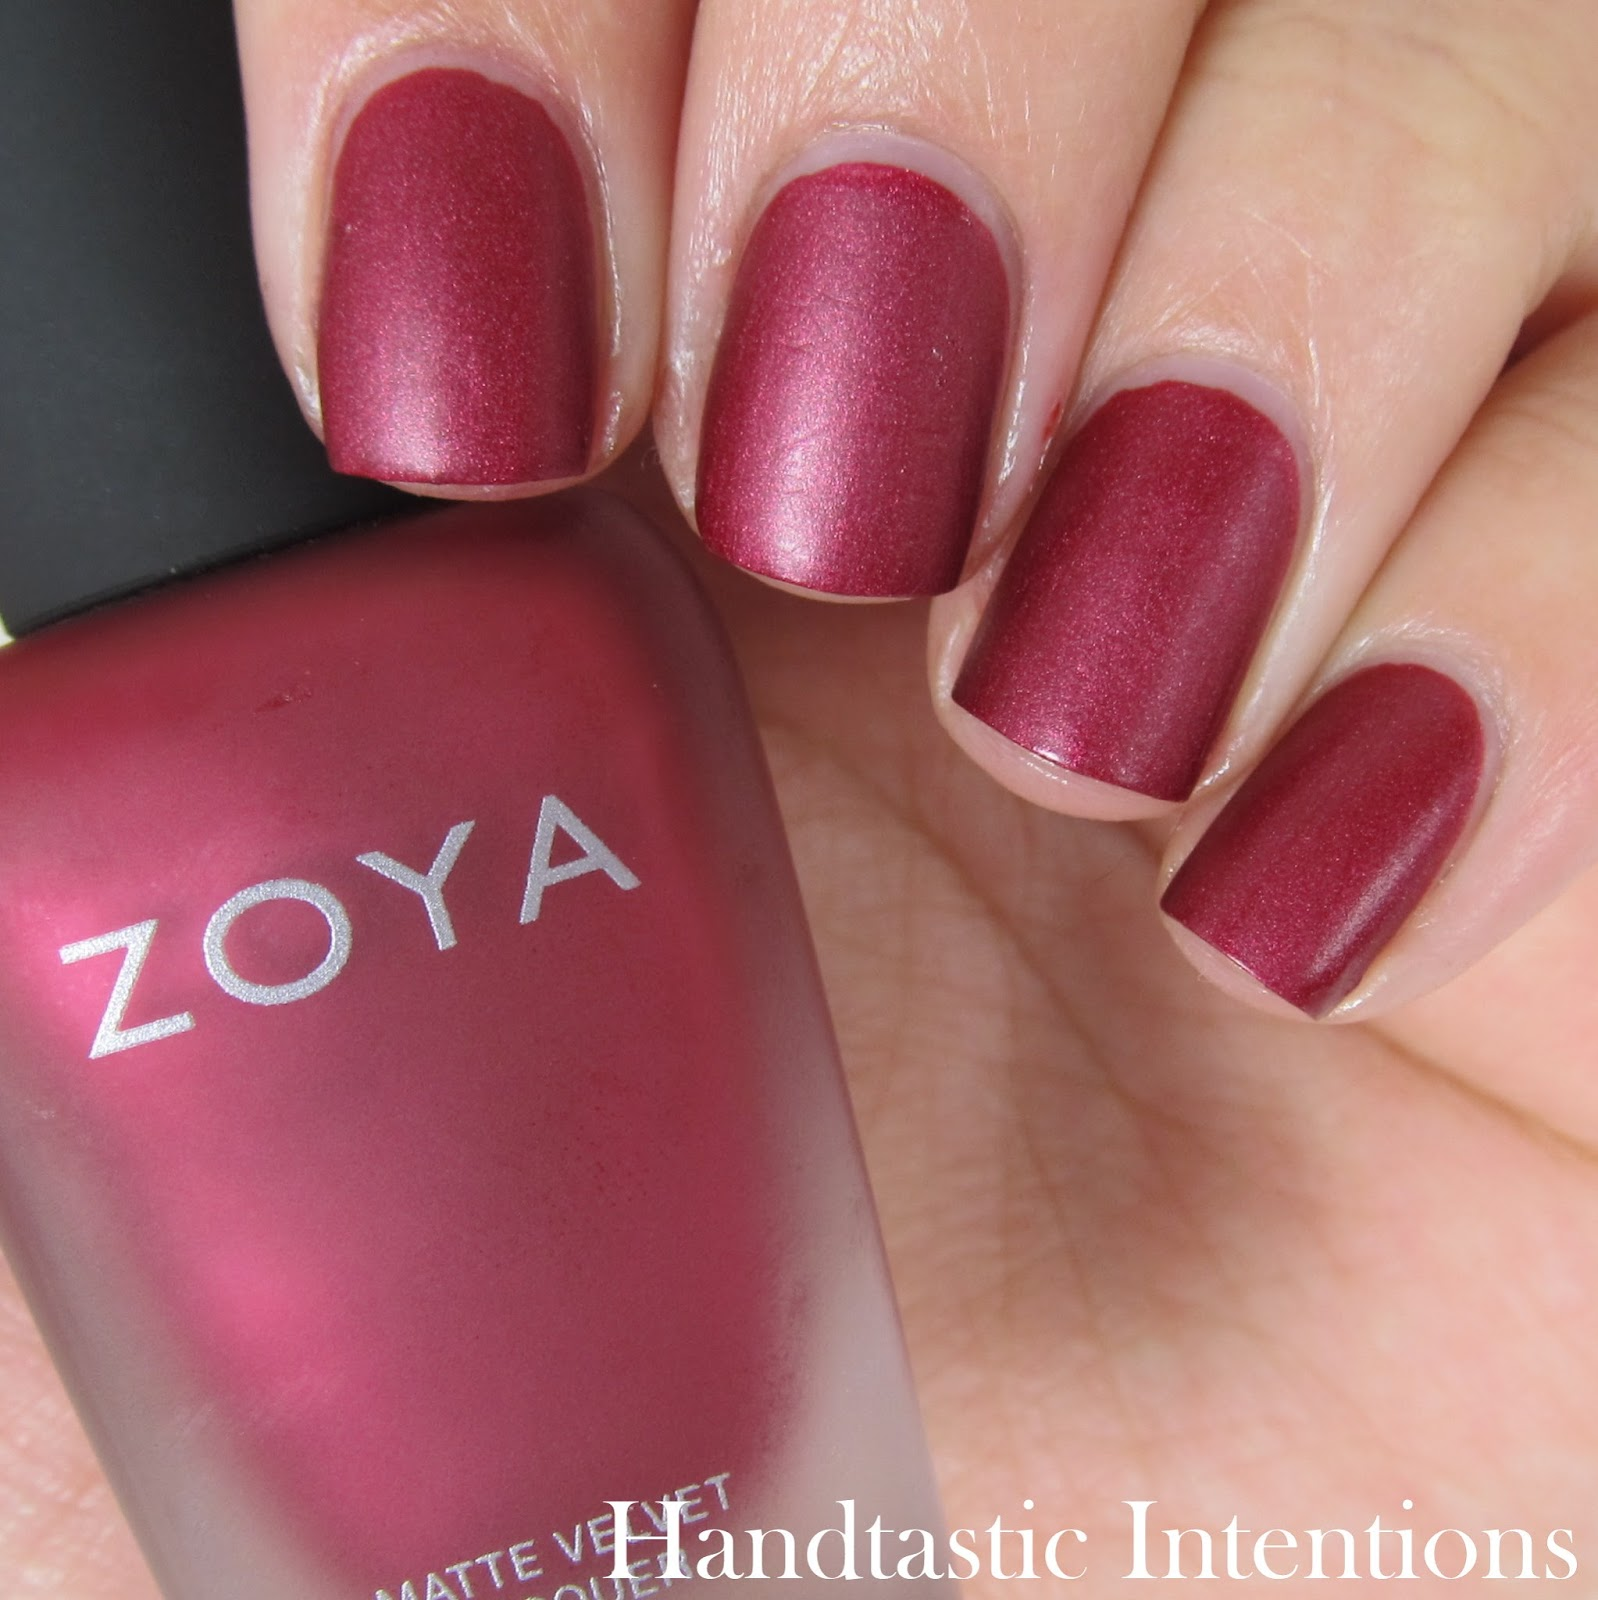 Zoya-Posh-Swatch